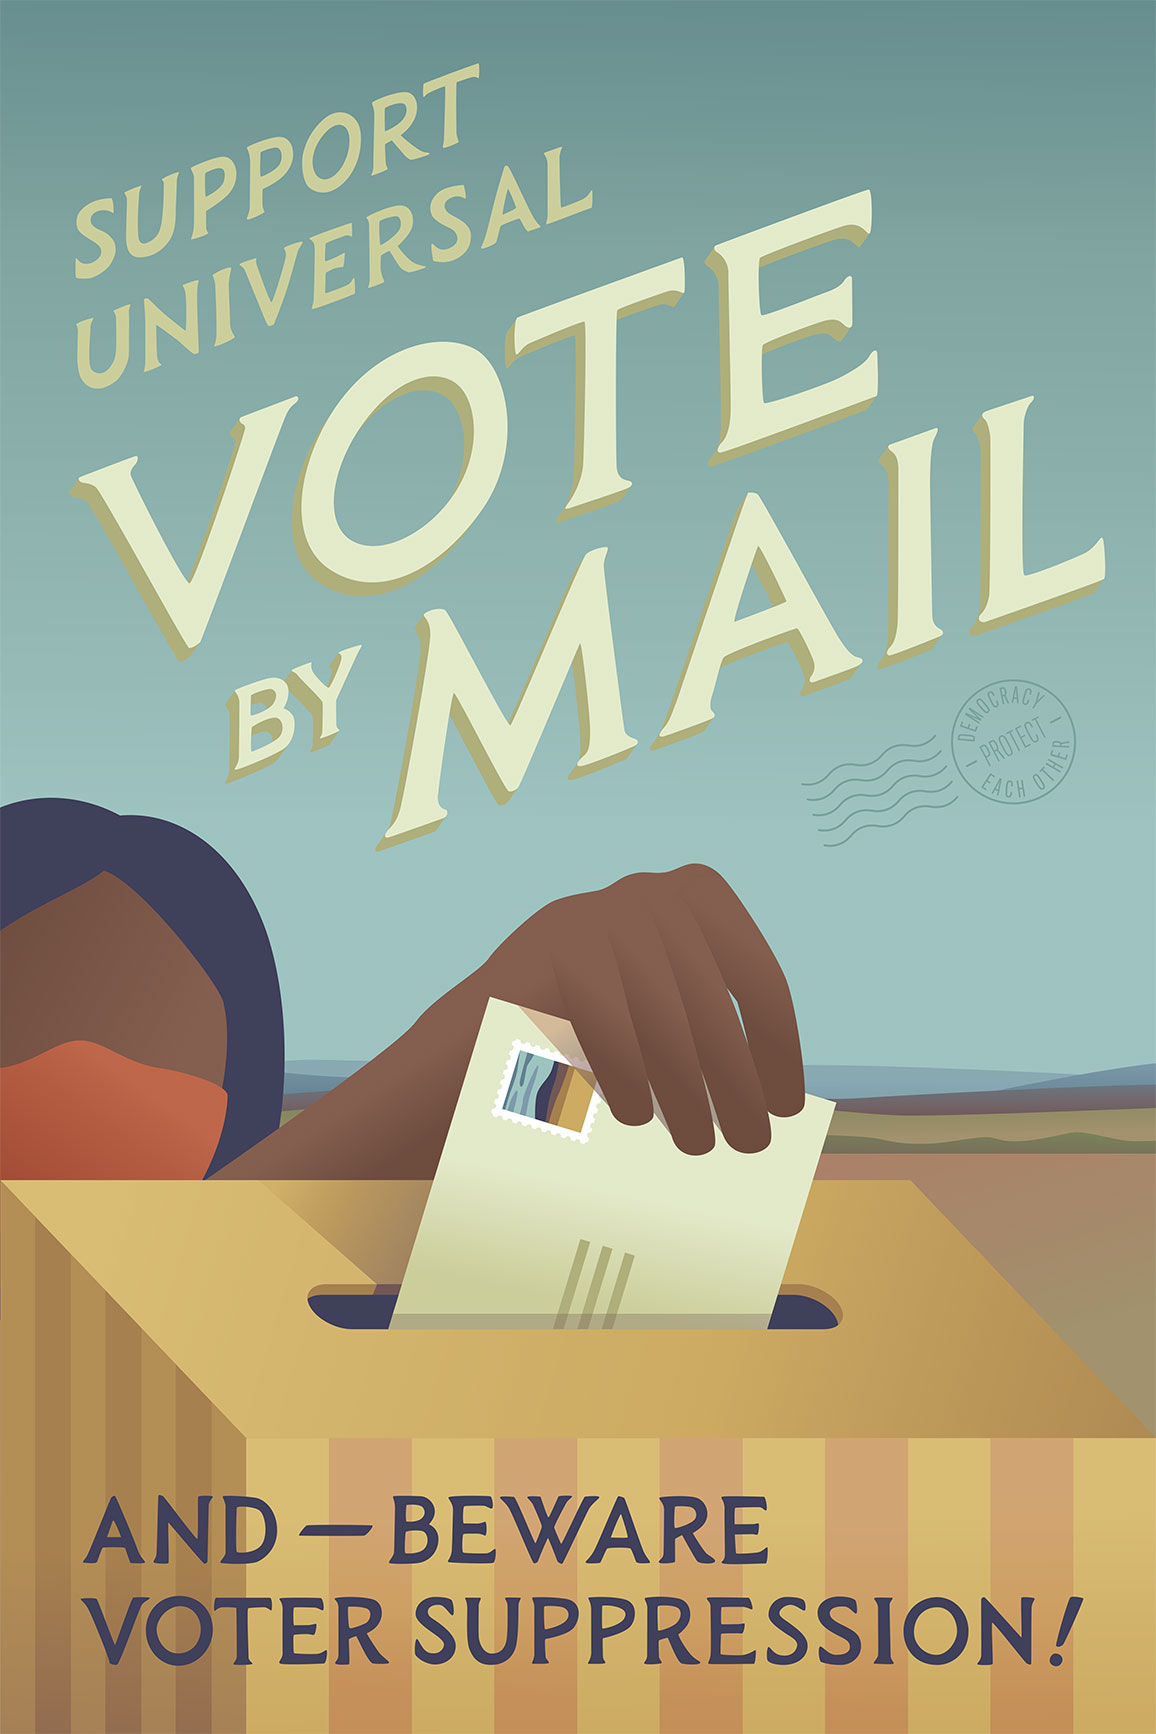 Universal Vote by Mail!